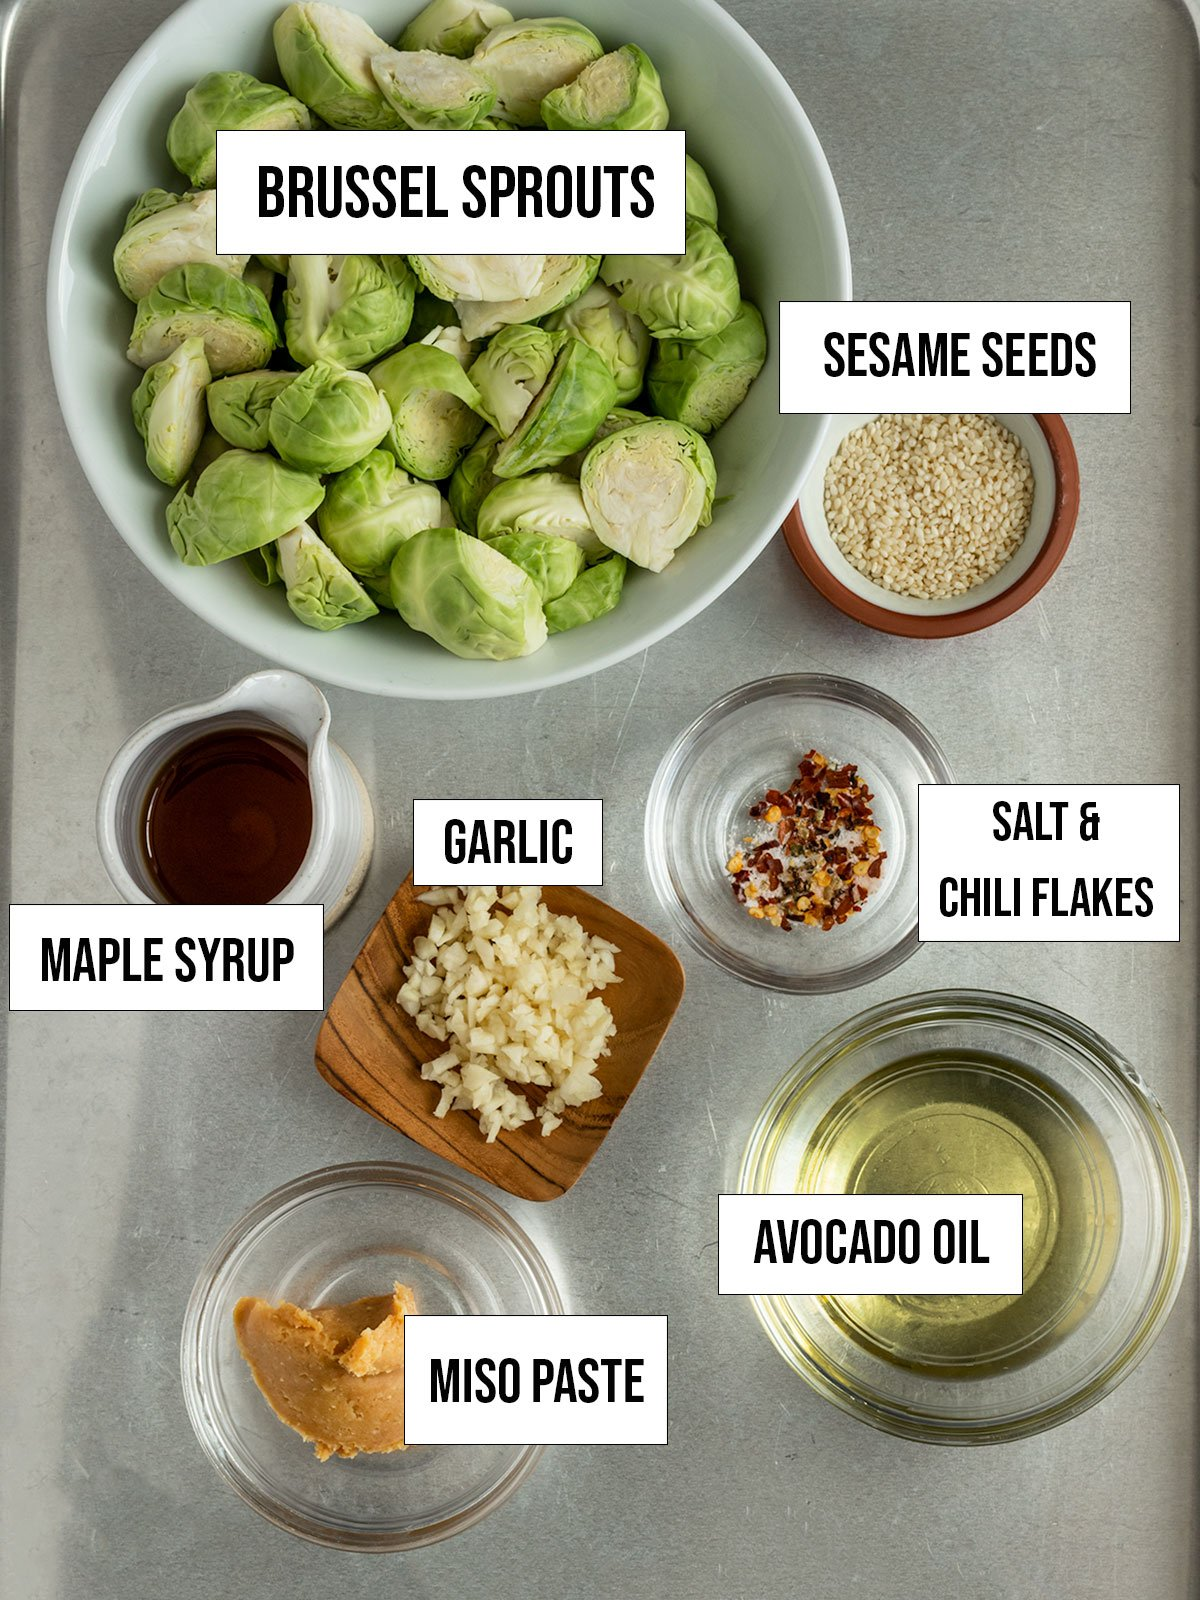 ingredients including brussel sprouts, maple syrup, miso paste, avocado oil, garlic, salt, chili flakes, sesame seeds